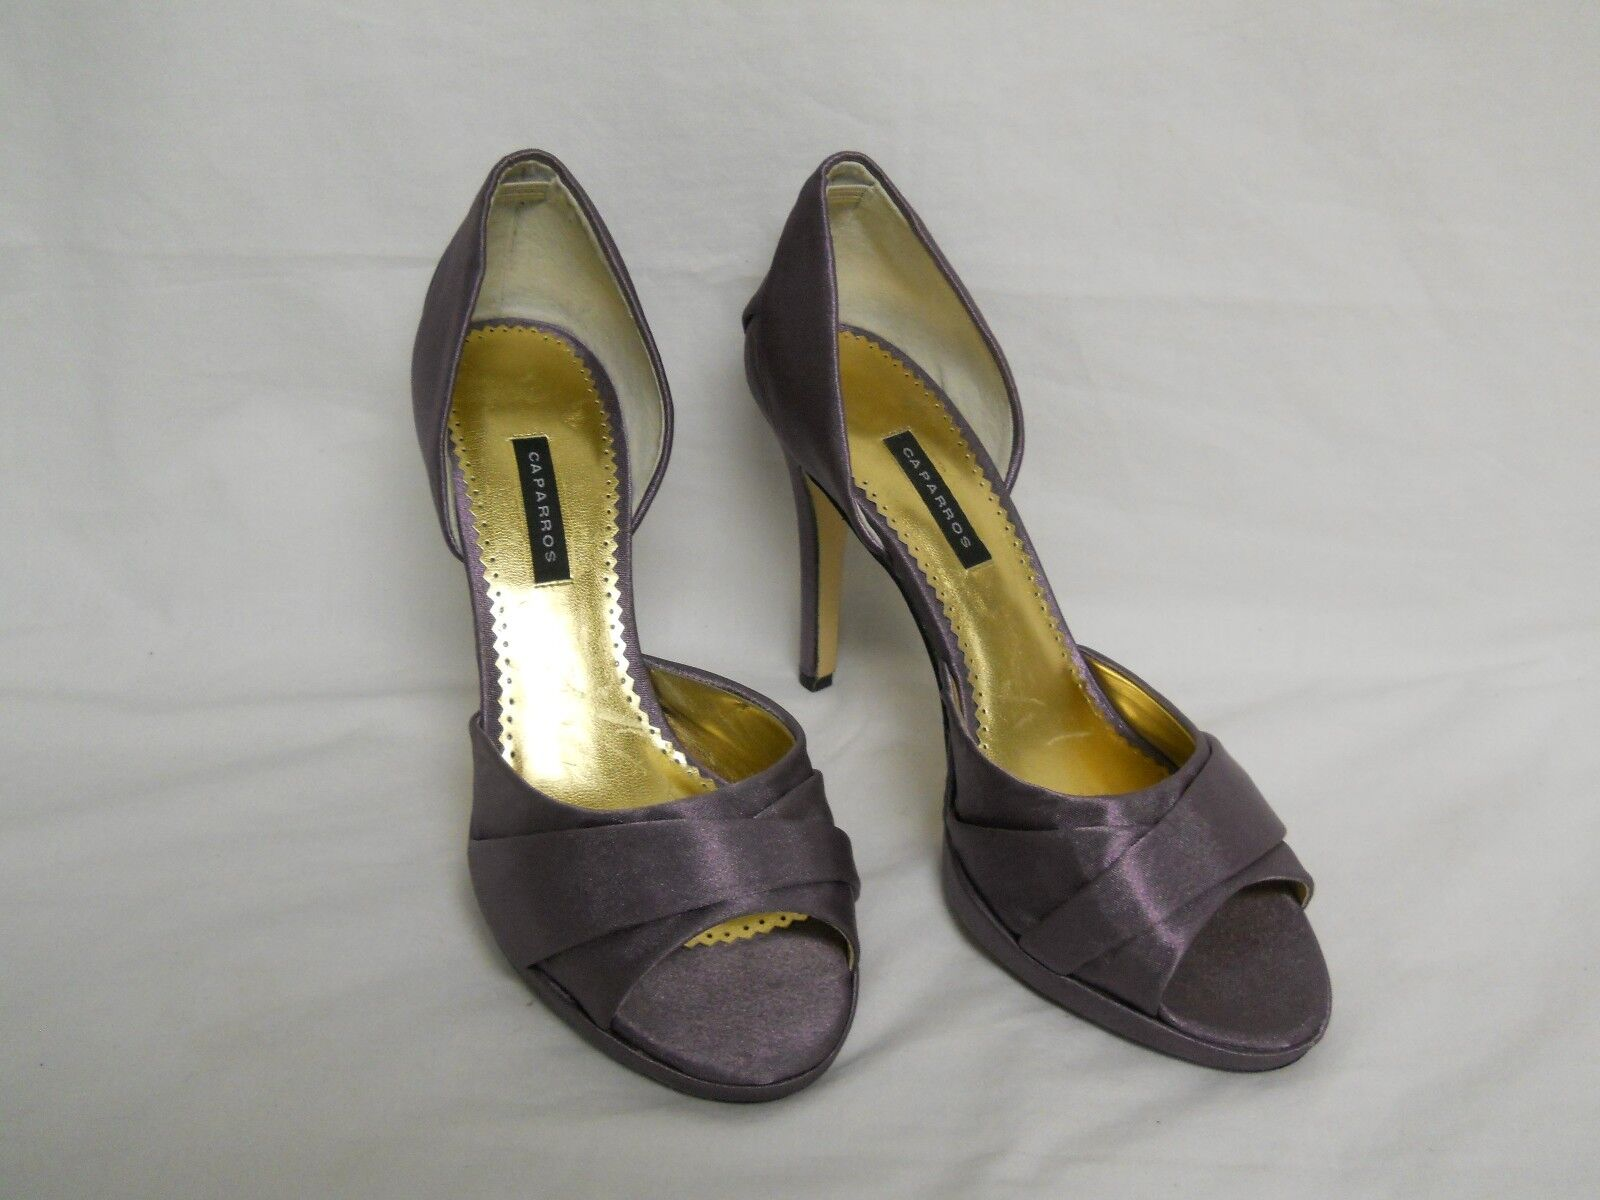 Caparros New Womens Lizzie Nightfall Crepe Open Toe D'Orsay Heels 9 M shoes NWOB